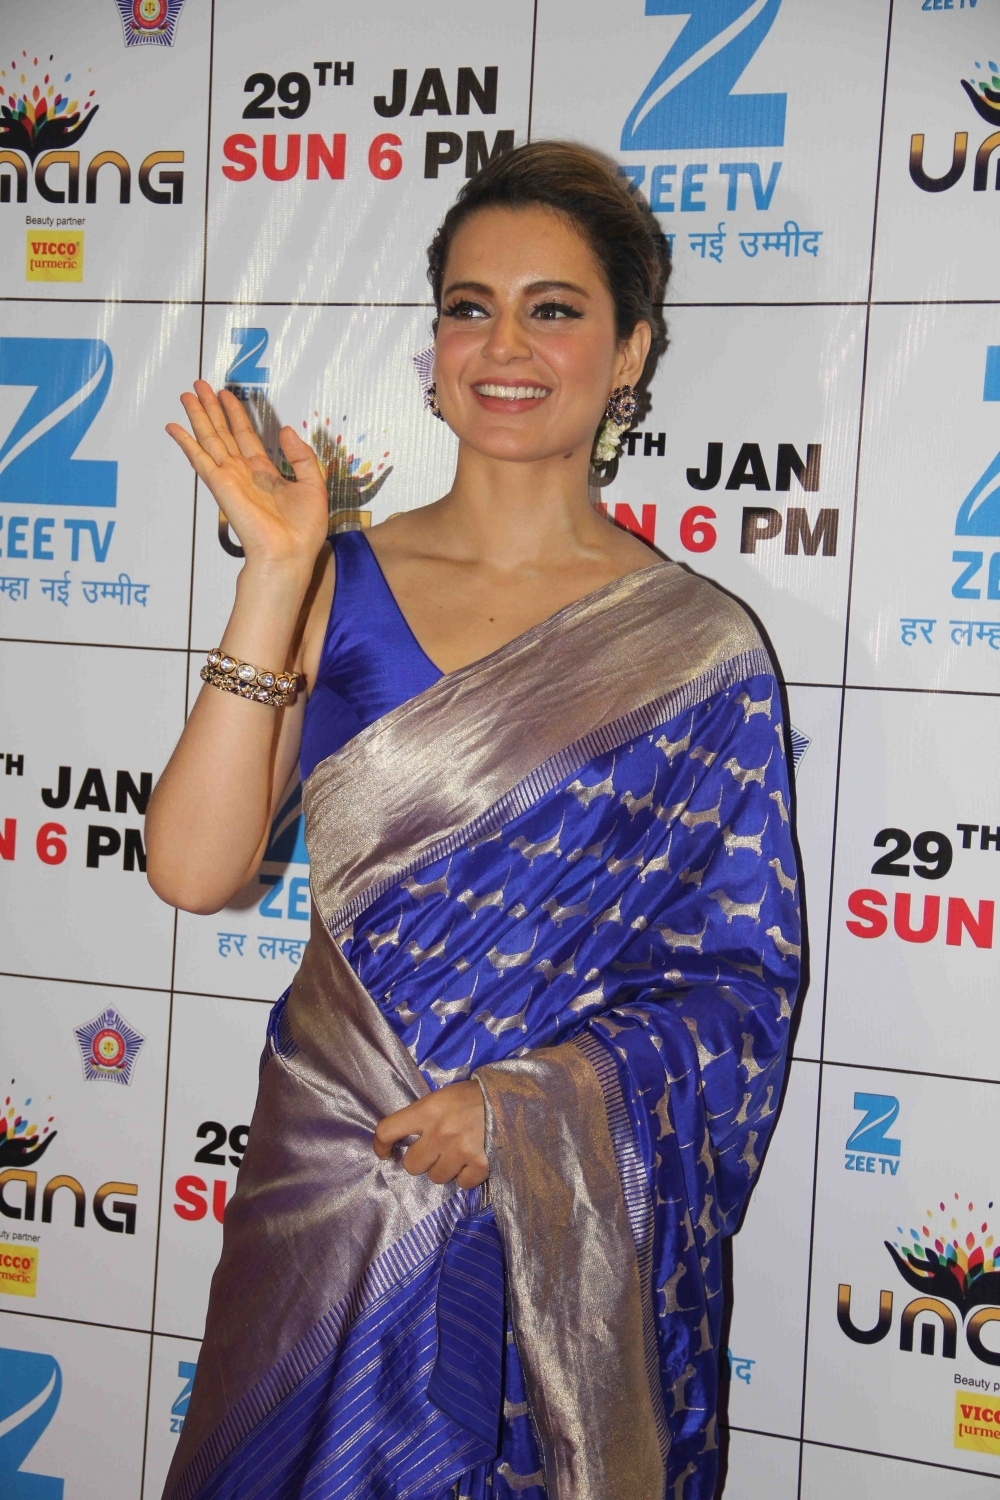 Mumbai: Actress Kangana Ranaut during the Umang Mumbai Police Show 2017 in Mumbai on Jan 22, 2017. (Photo: IANS)